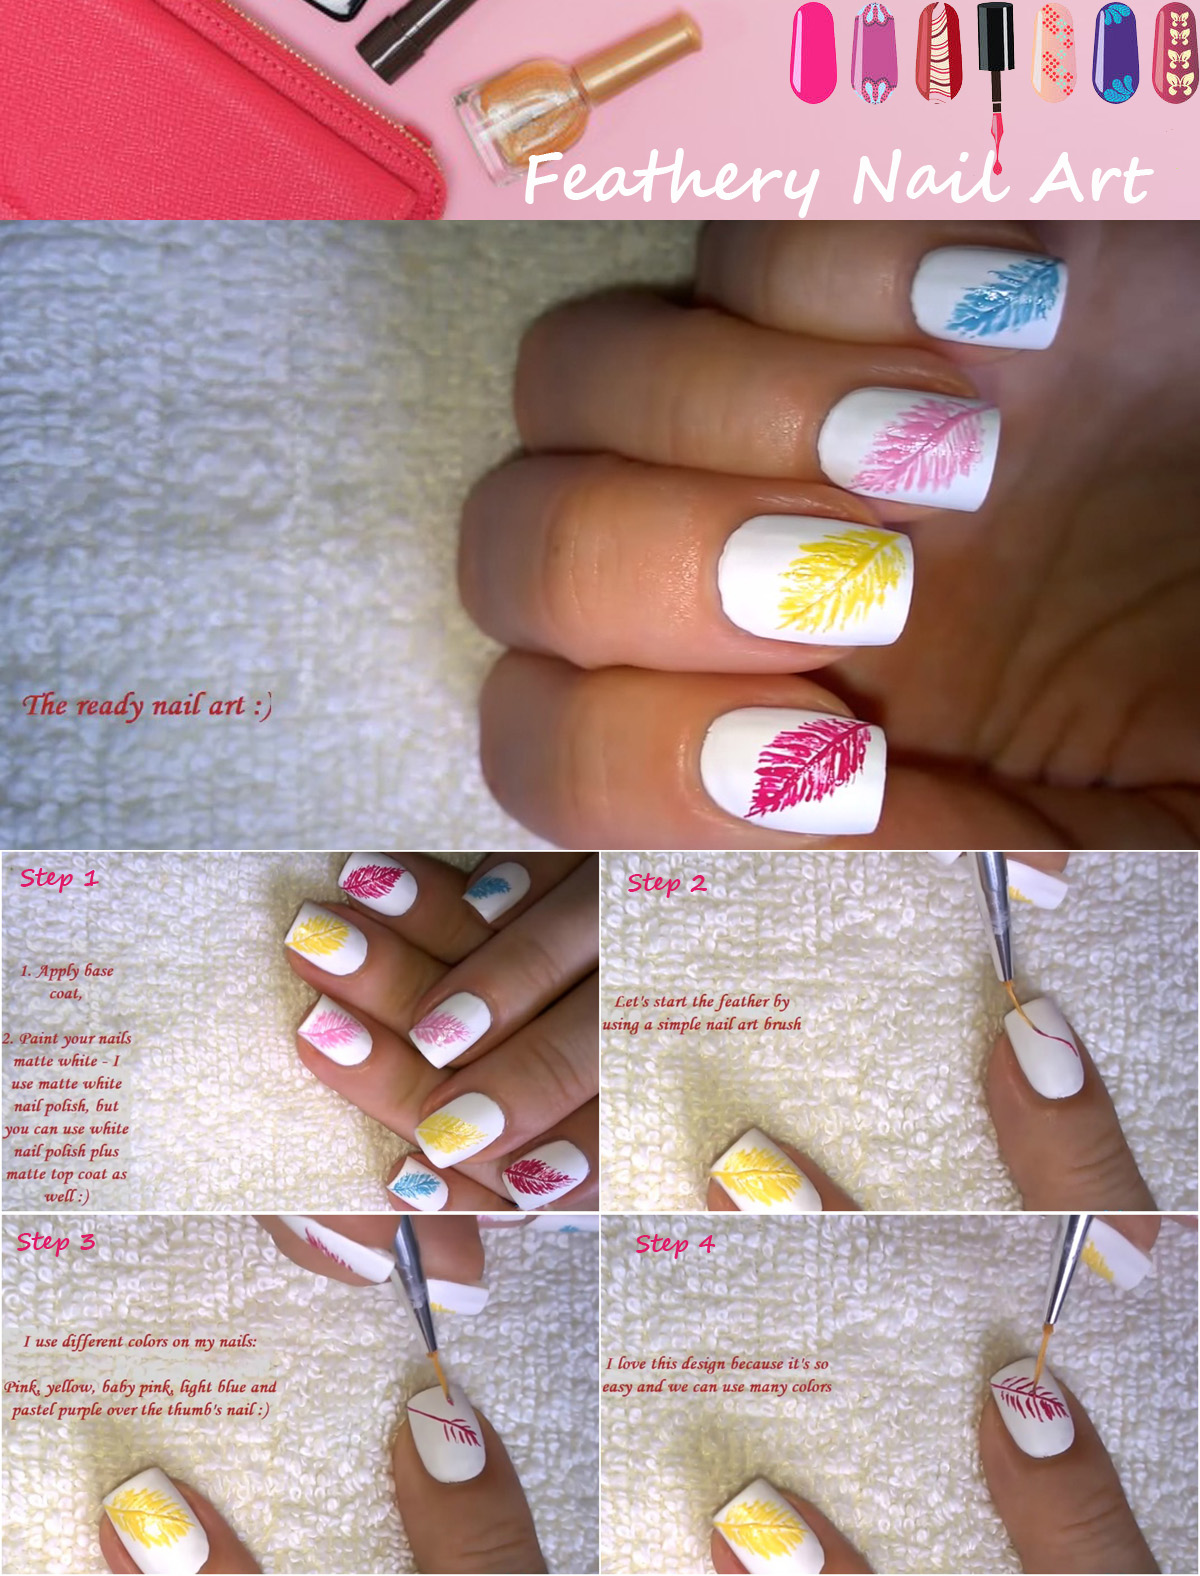 Feathery Nail Design That Looks Amazing Top Beauty Magazines